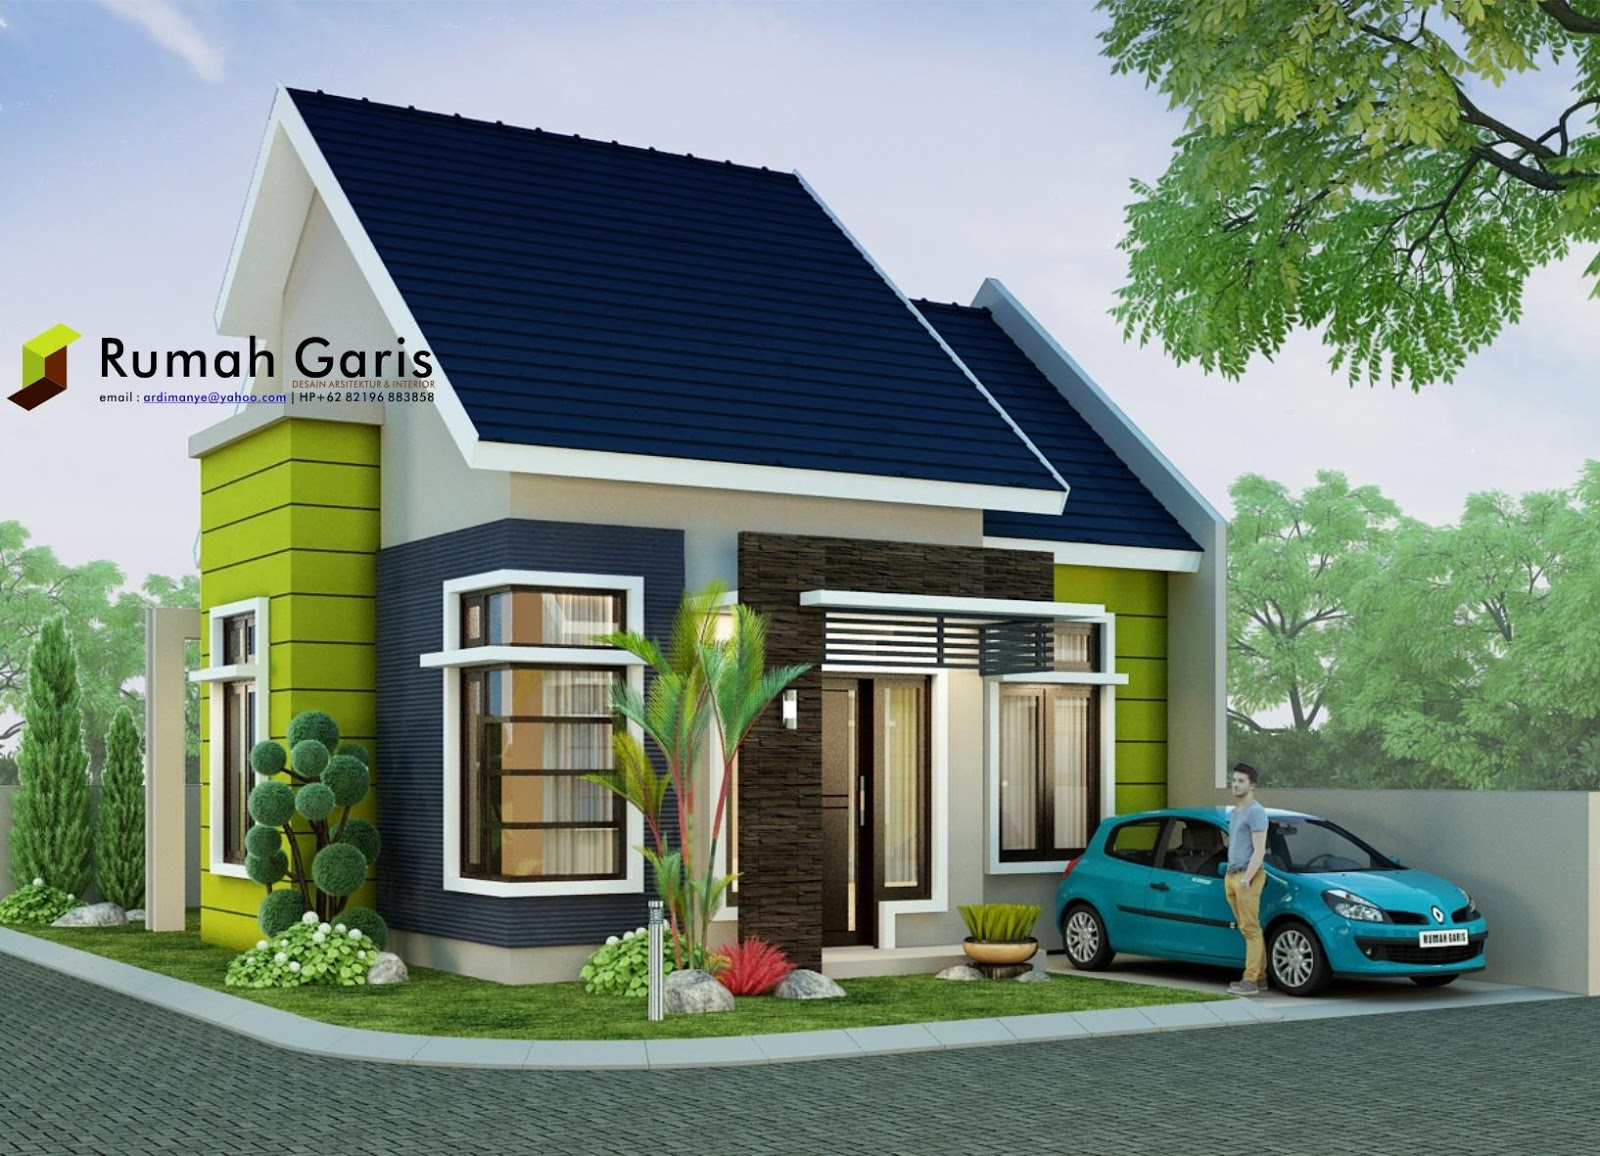 rumah minimalis modern tipe 60 di lahan sudut 10x15 meter rumah garis. Black Bedroom Furniture Sets. Home Design Ideas